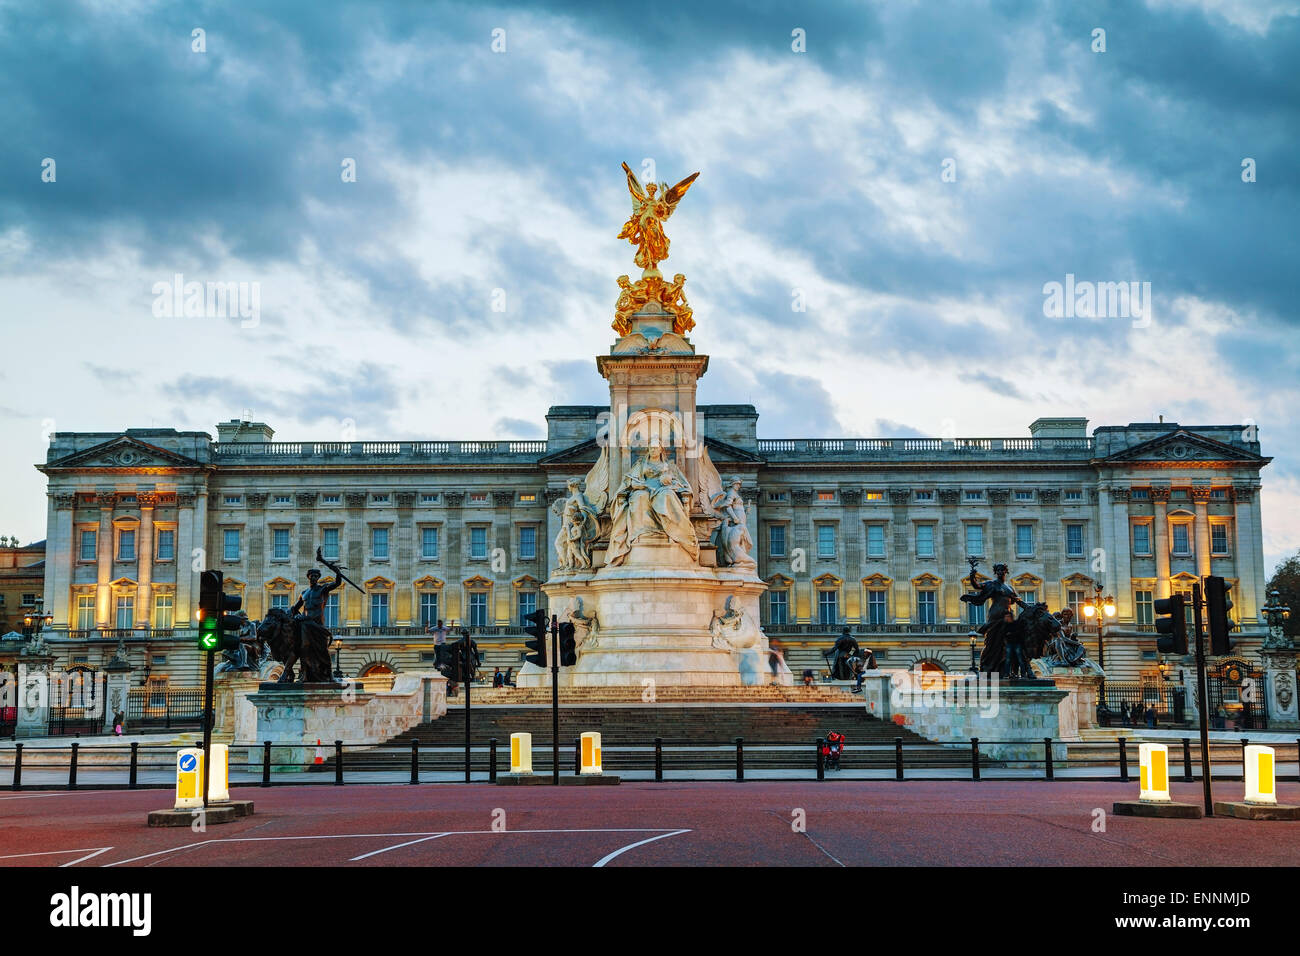 LONDON - APRIL 12: Buckingham palace at sunset on April 12, 2015 in London, UK. - Stock Image